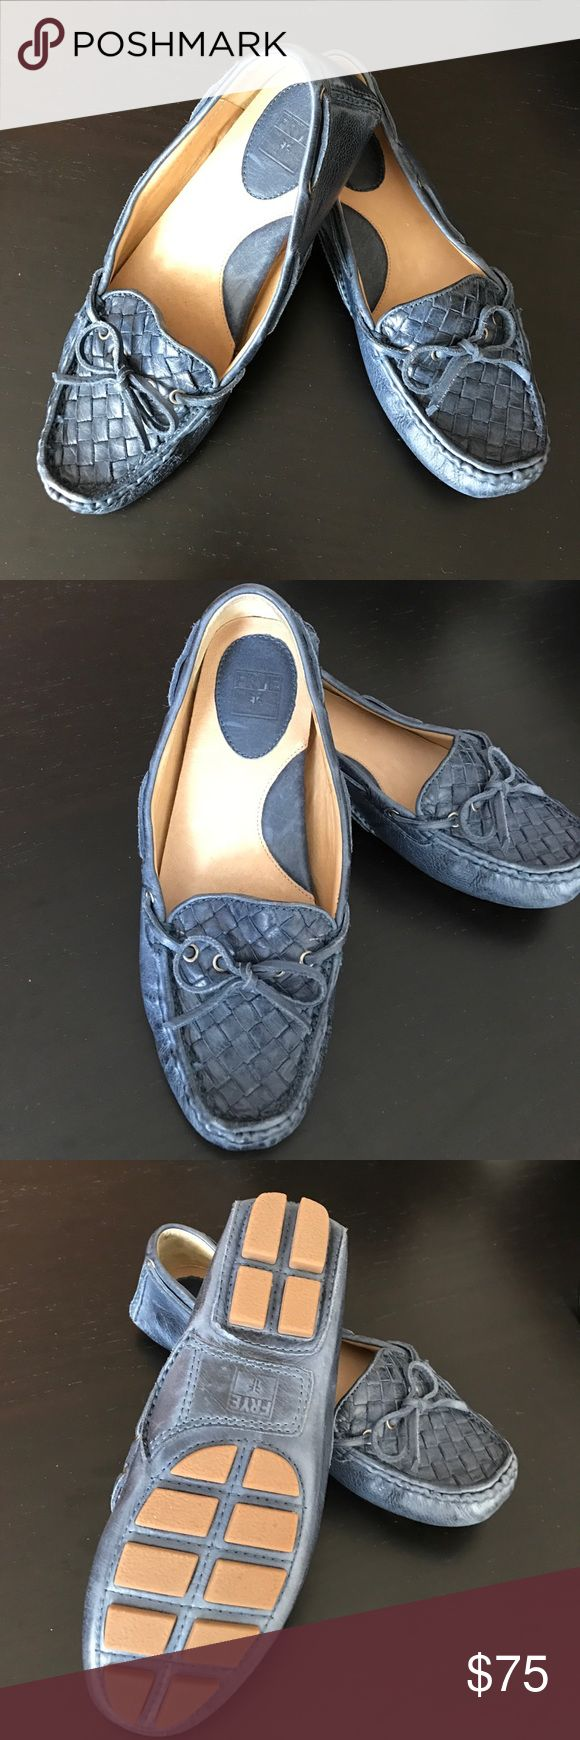 Frye Raegan Driving Shoe Woven leather driving shoes, only worn twice, extremely comfortable Frye Shoes Flats & Loafers